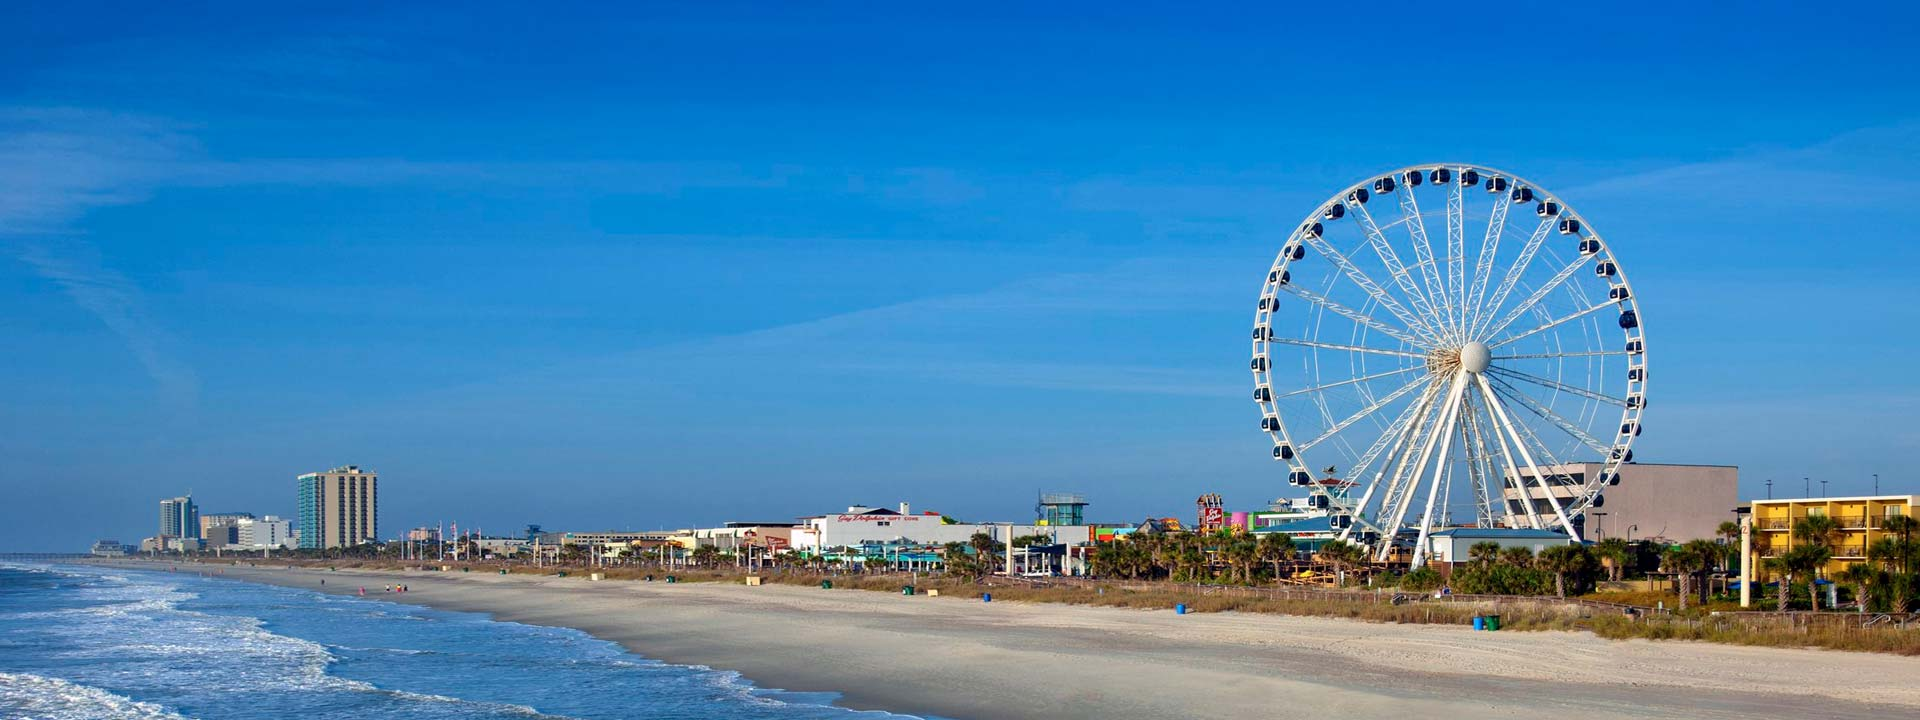 Fun Facts About North Myrtle Beach